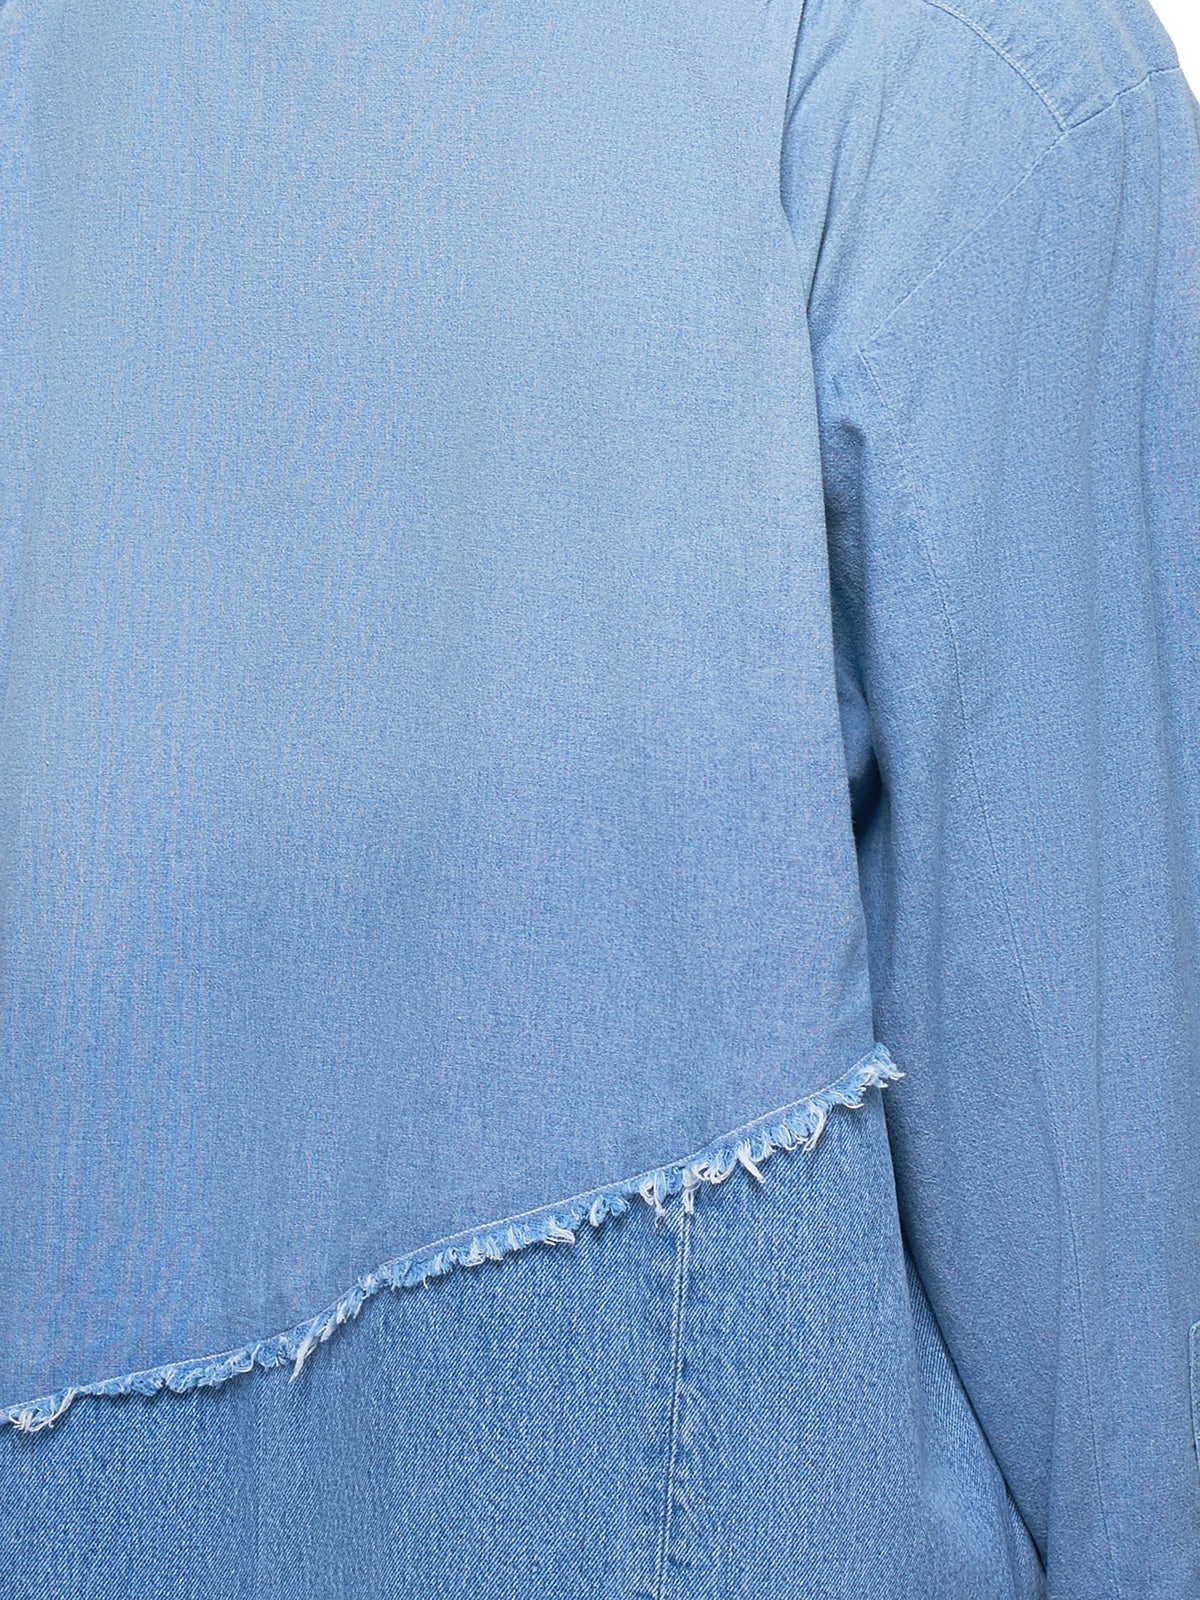 Greg Lauren Shirt - Hlorenzo Detail 2